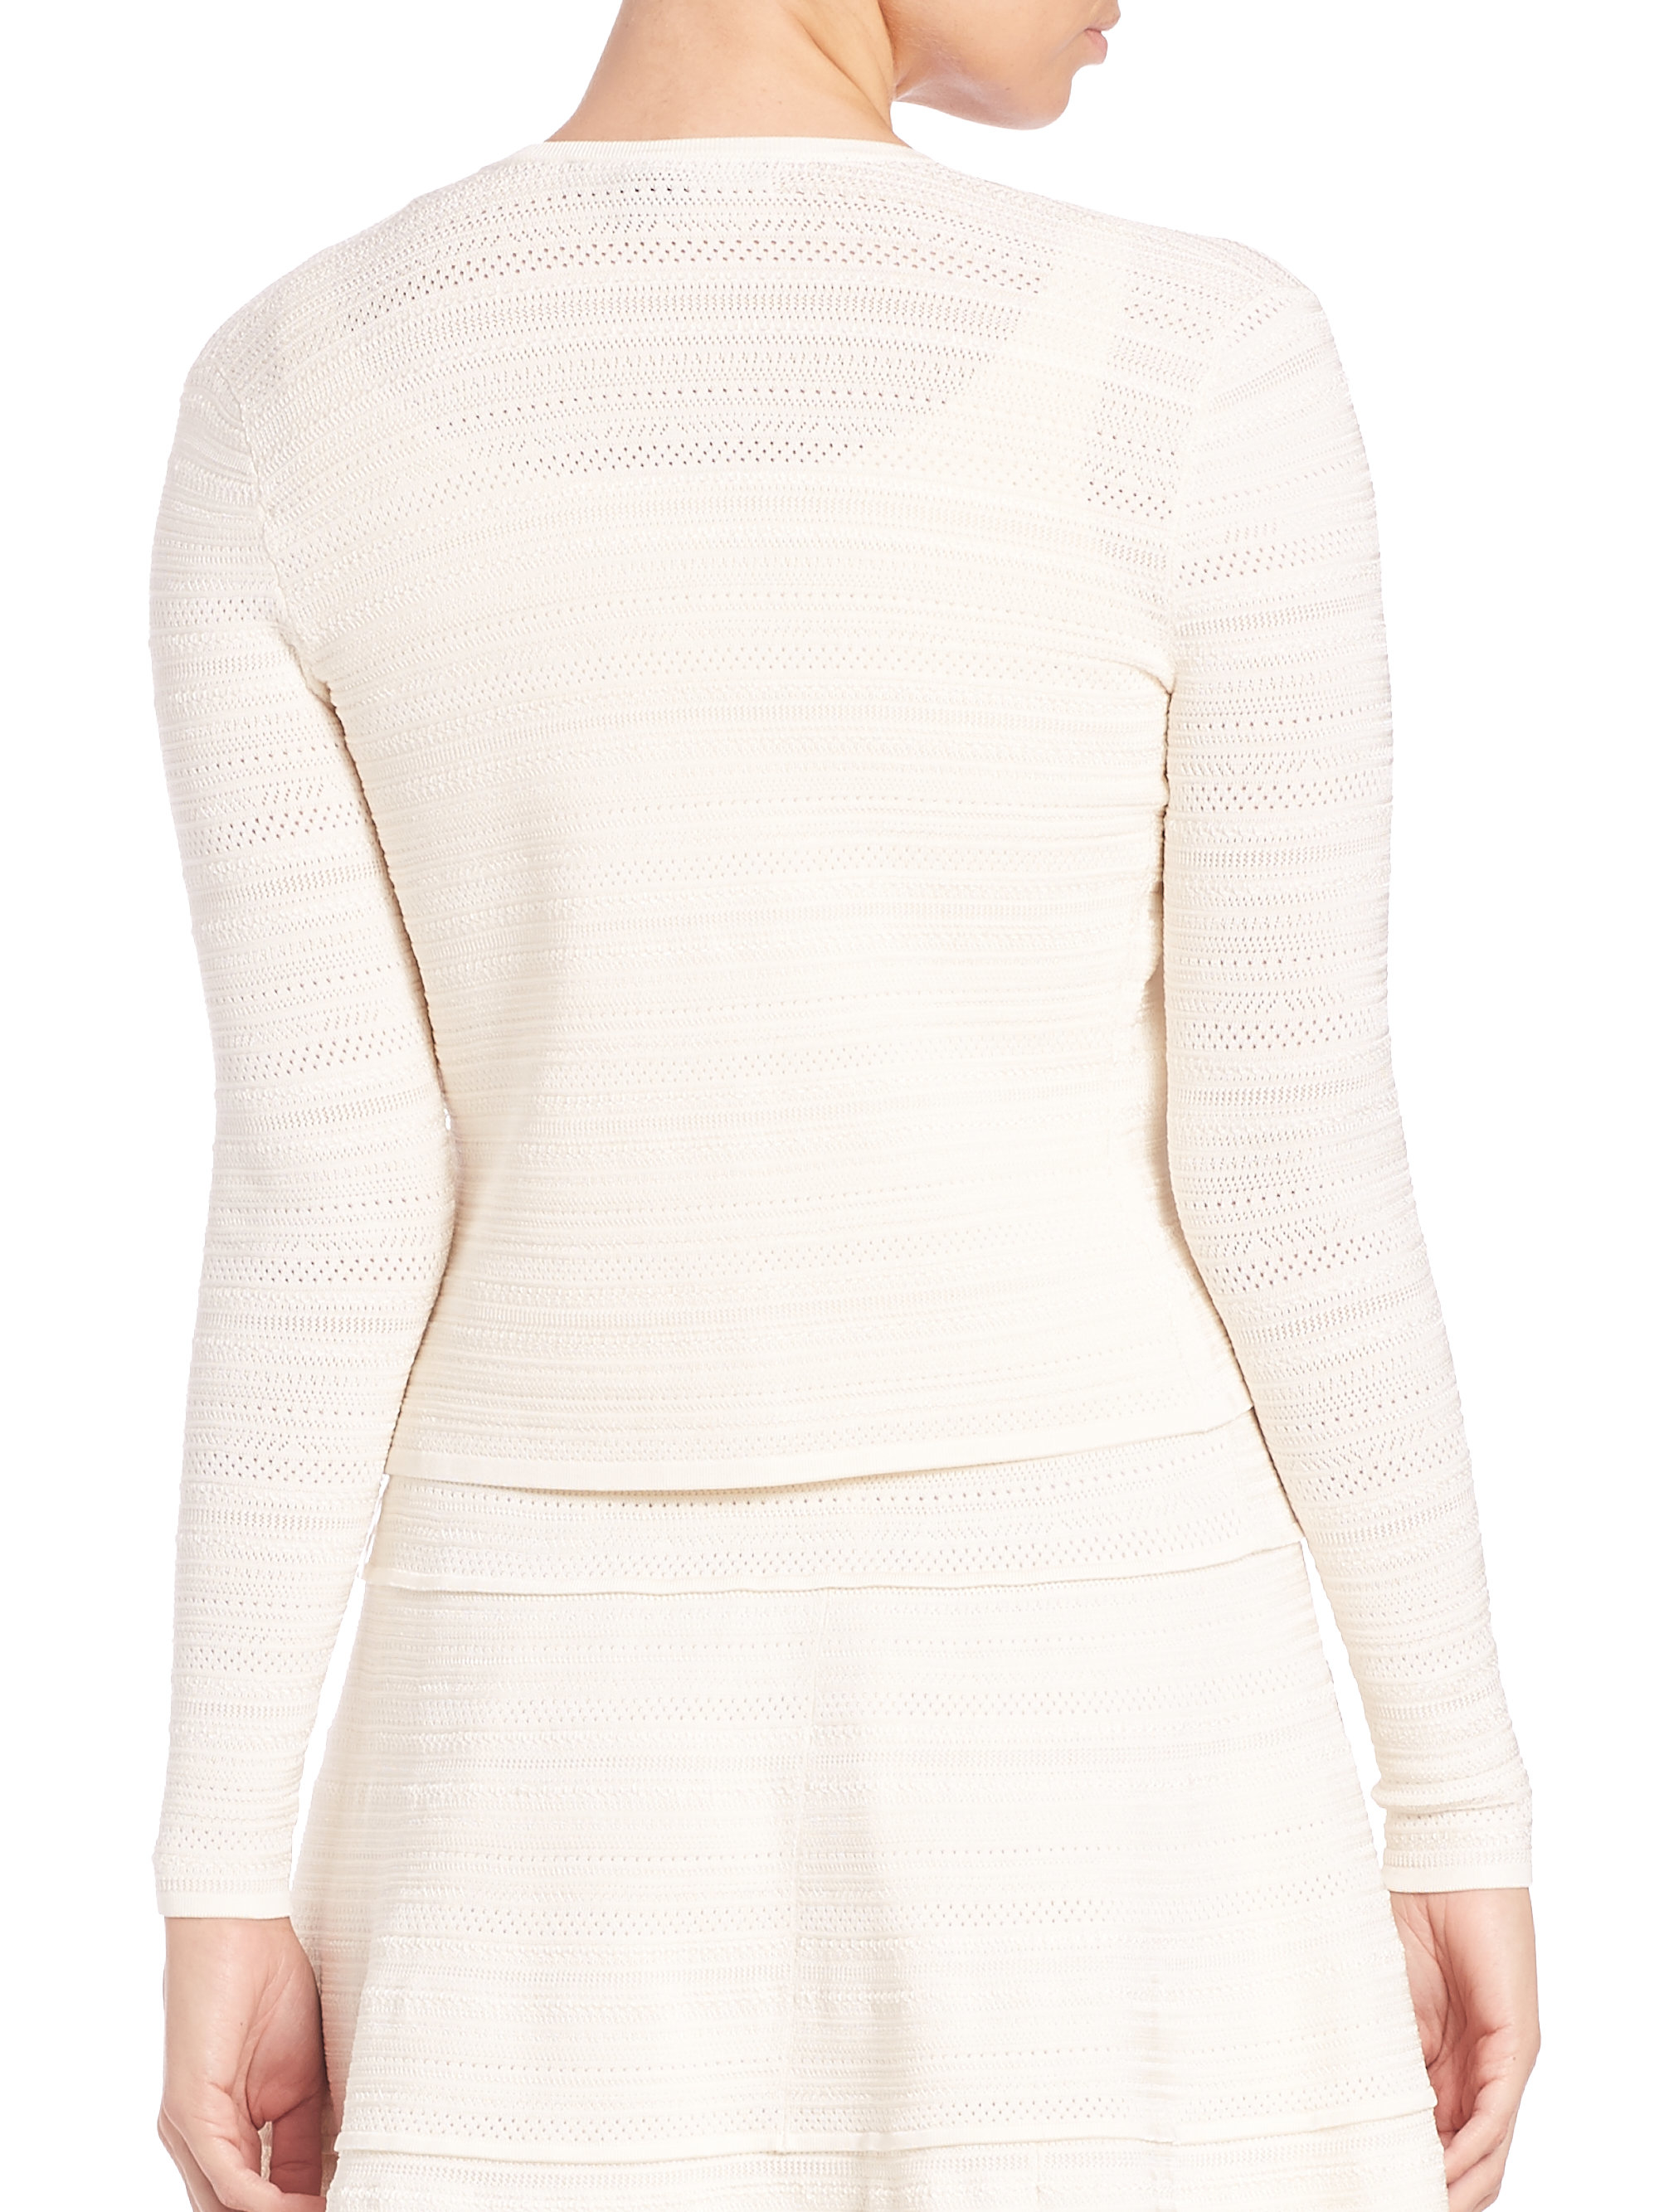 Ralph lauren collection Cropped Knit Cardigan in White | Lyst